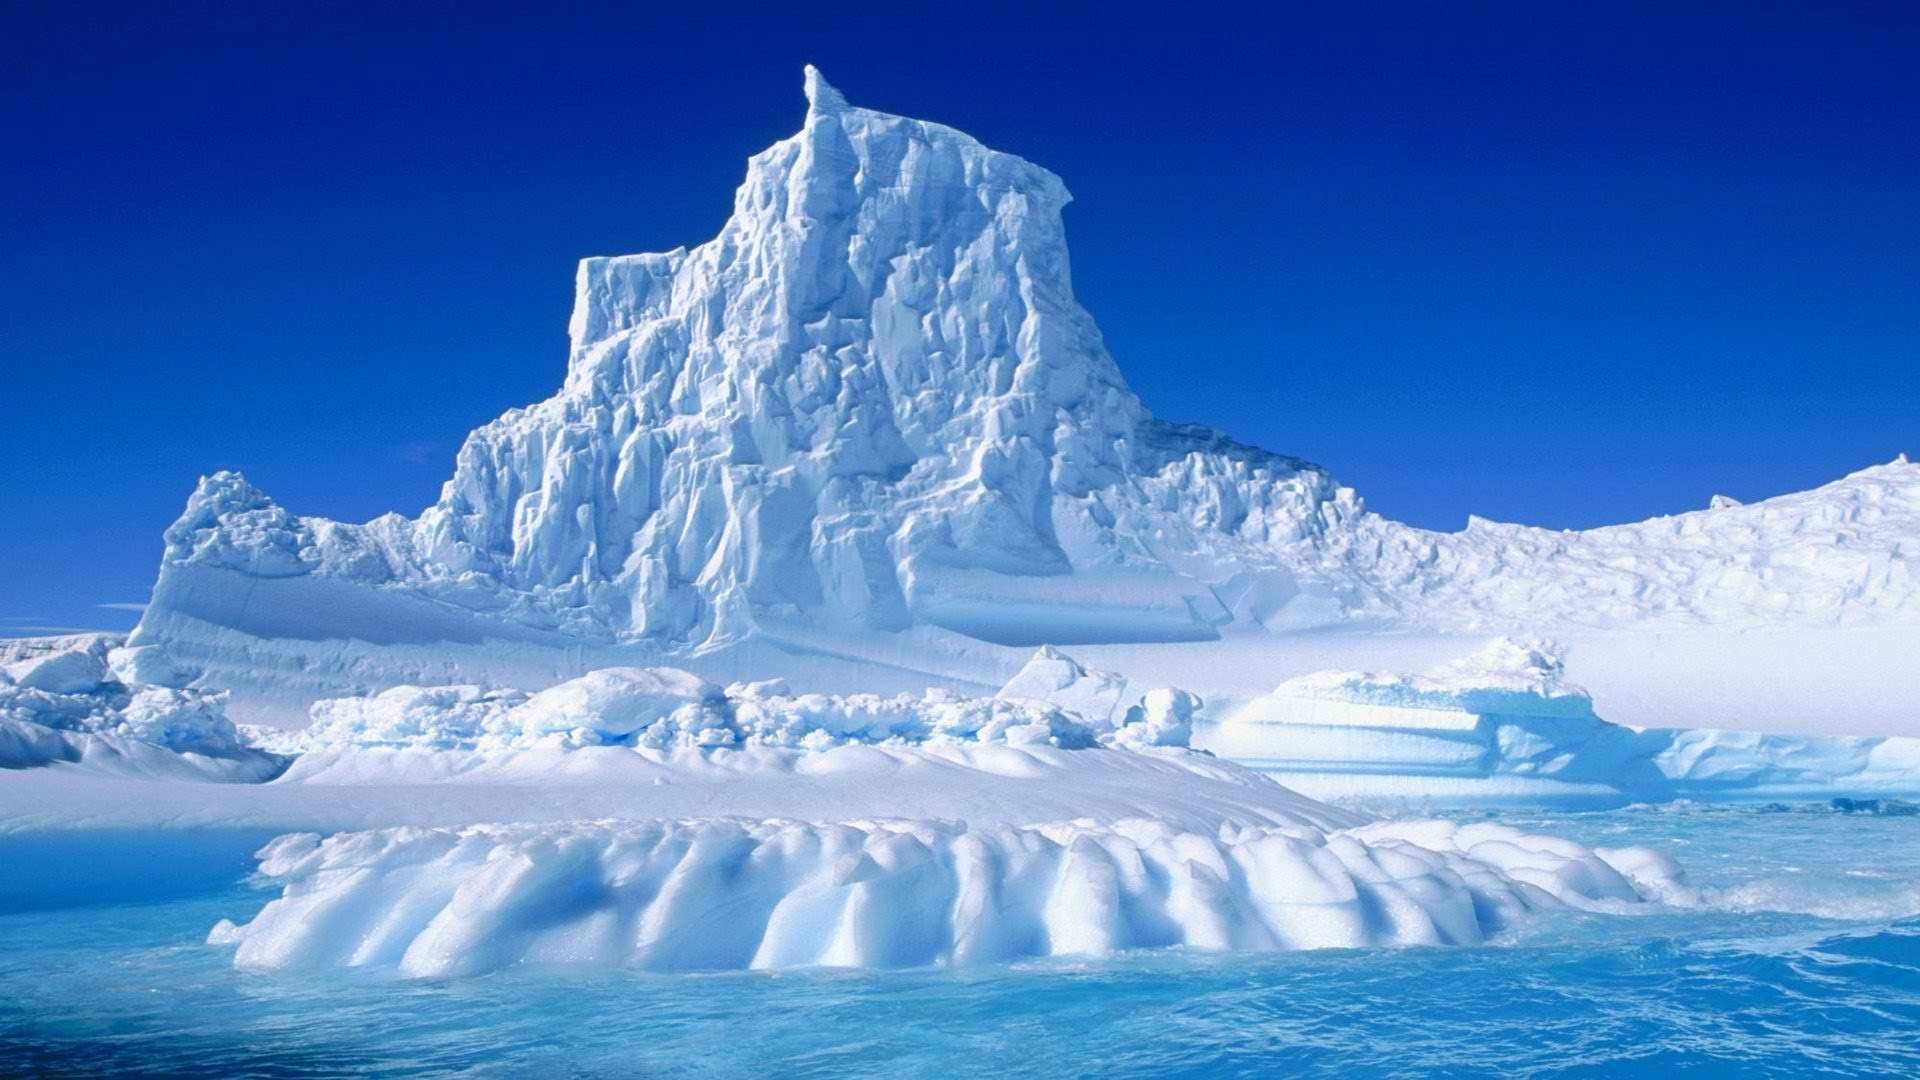 sea level rise from antarctic ice sheet could double constantine